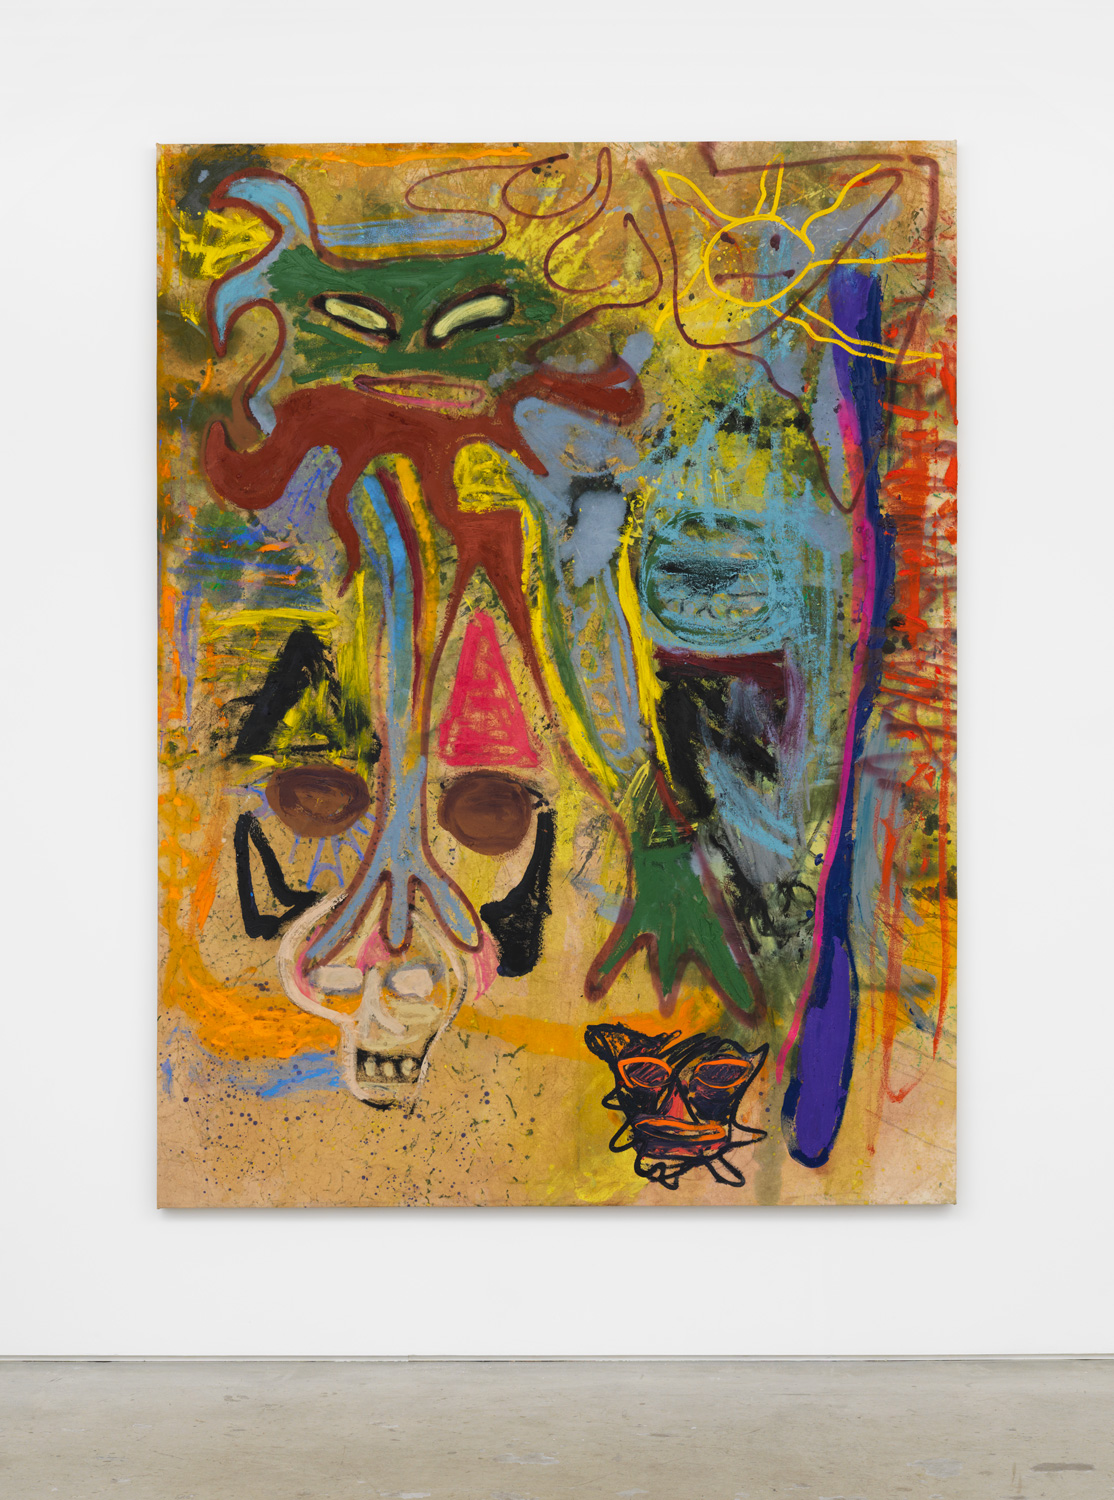 Bill Saylor, Helio, 2018, oil, flashe, oil stick, spray paint on canvas, 84h x 63w in.